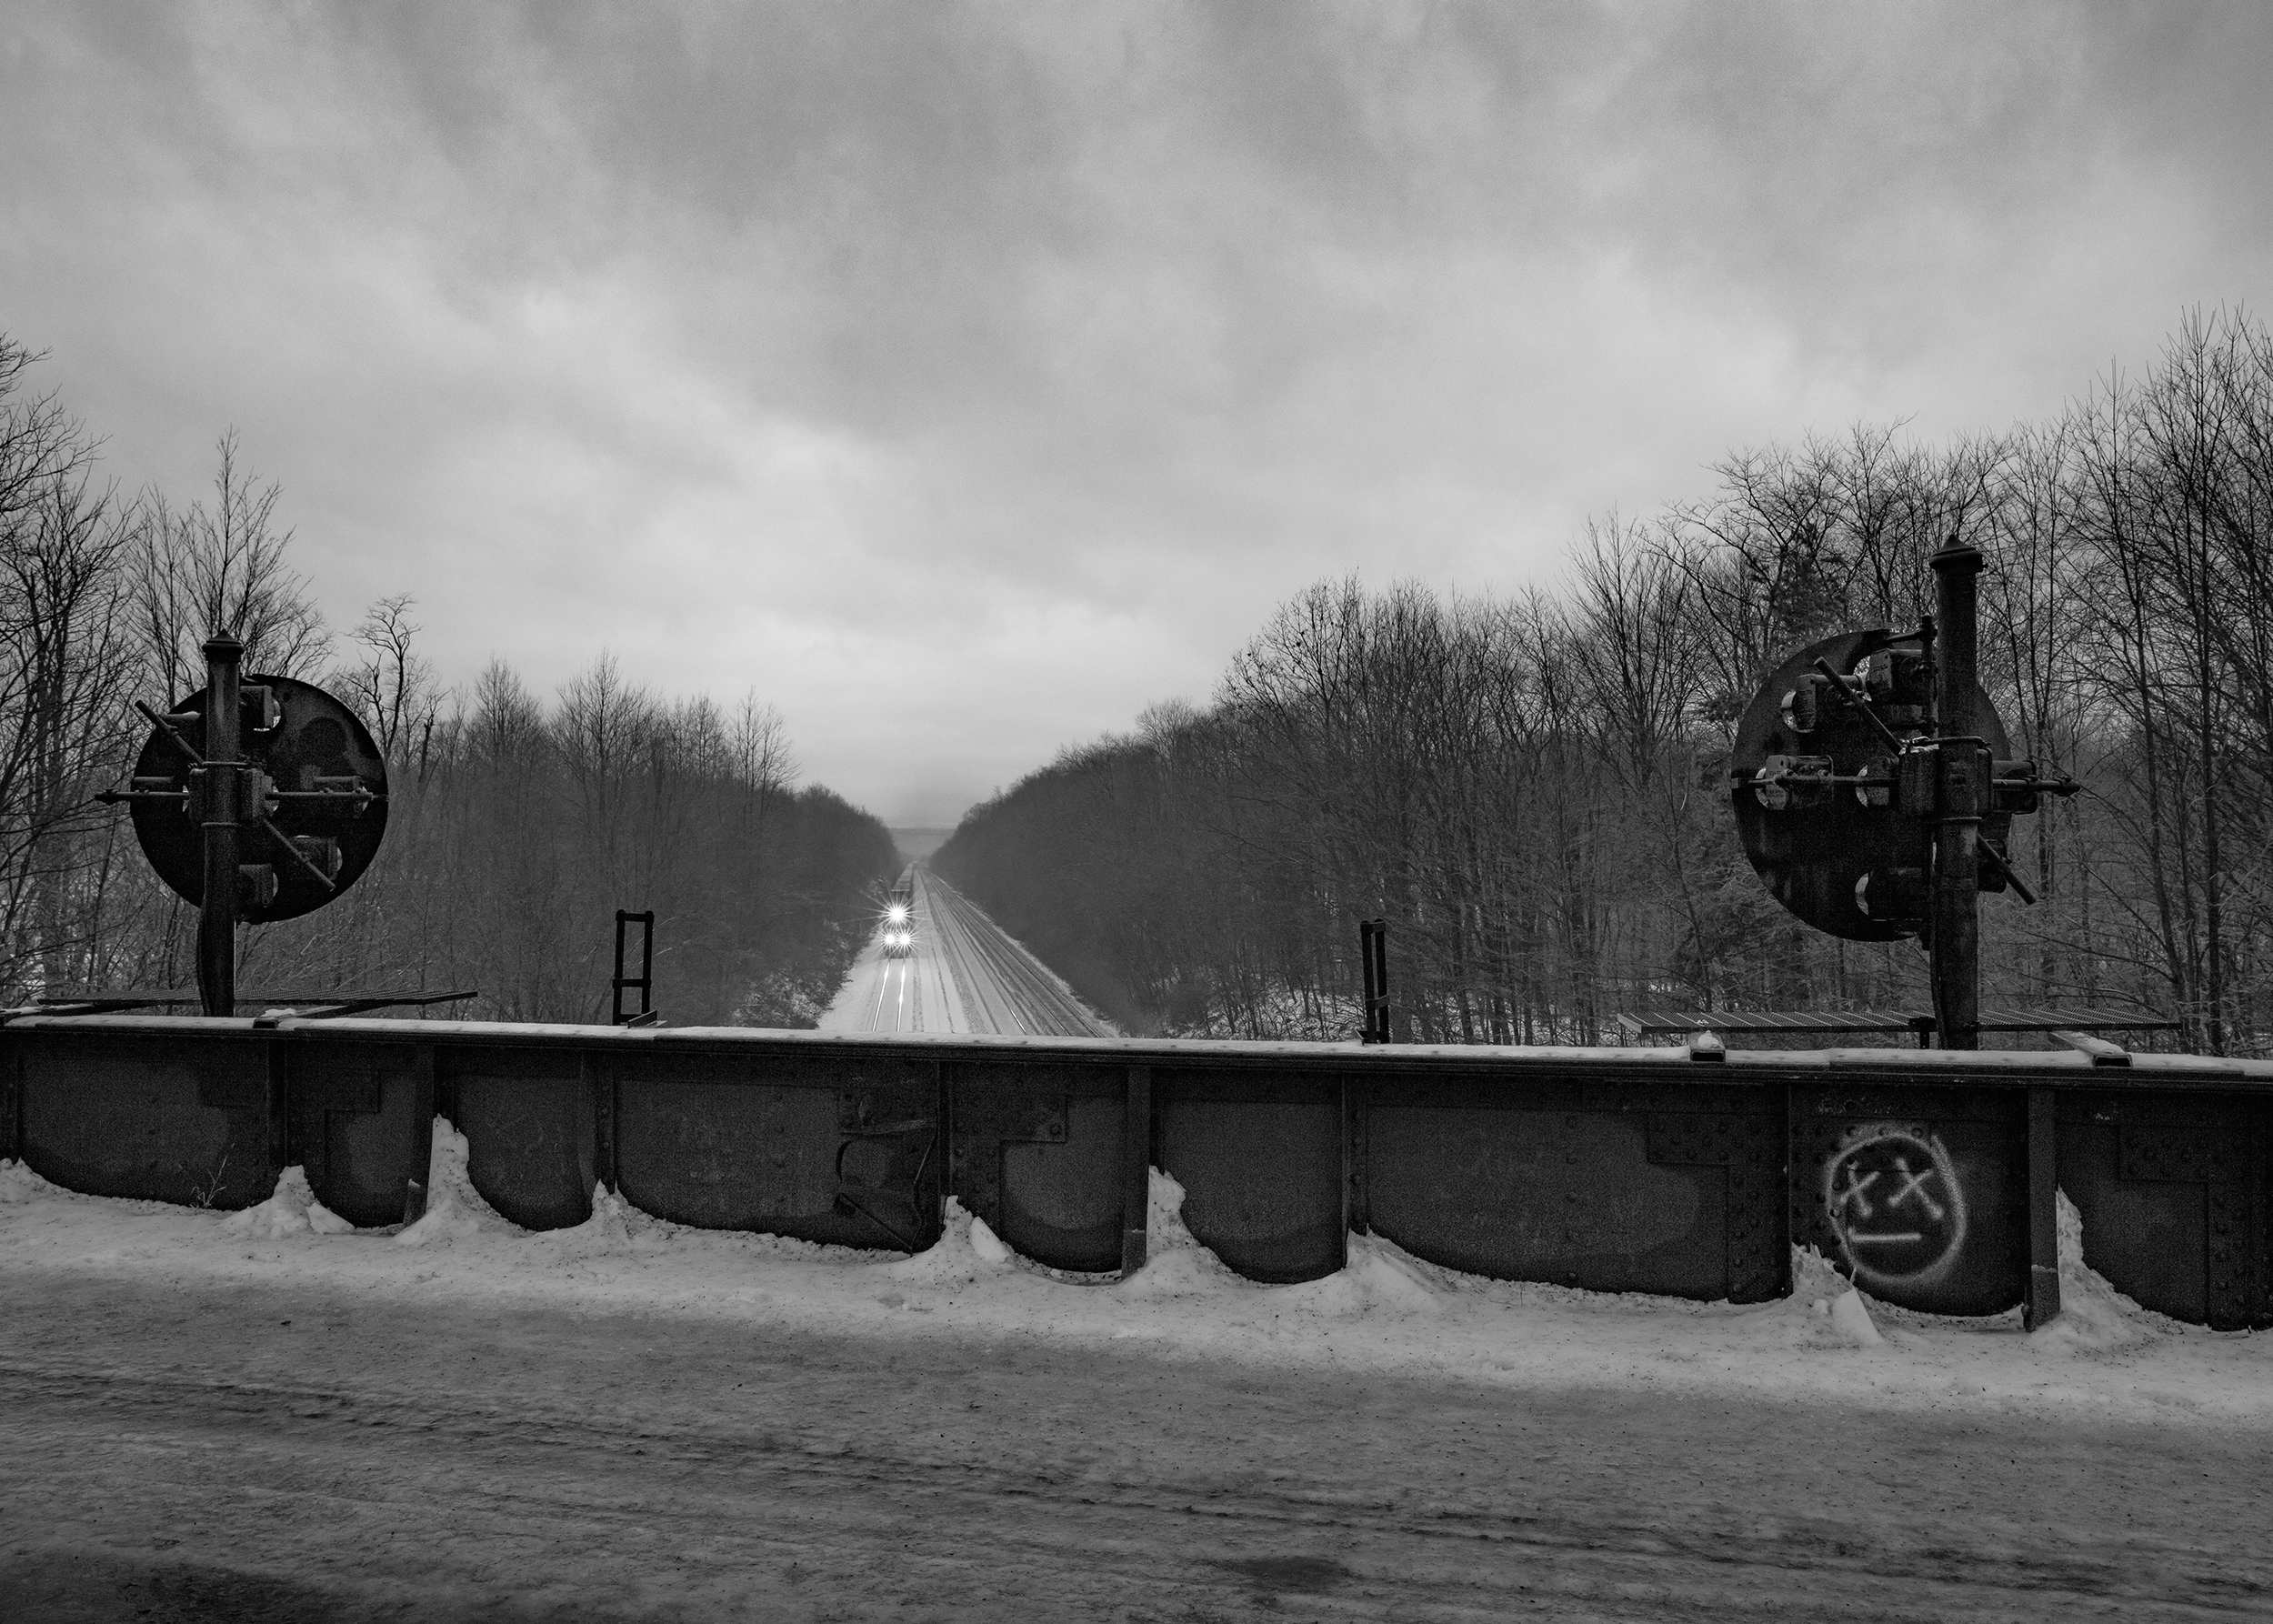 On the West Slope of the Allegheny Summit, Portage, Pennsylvania